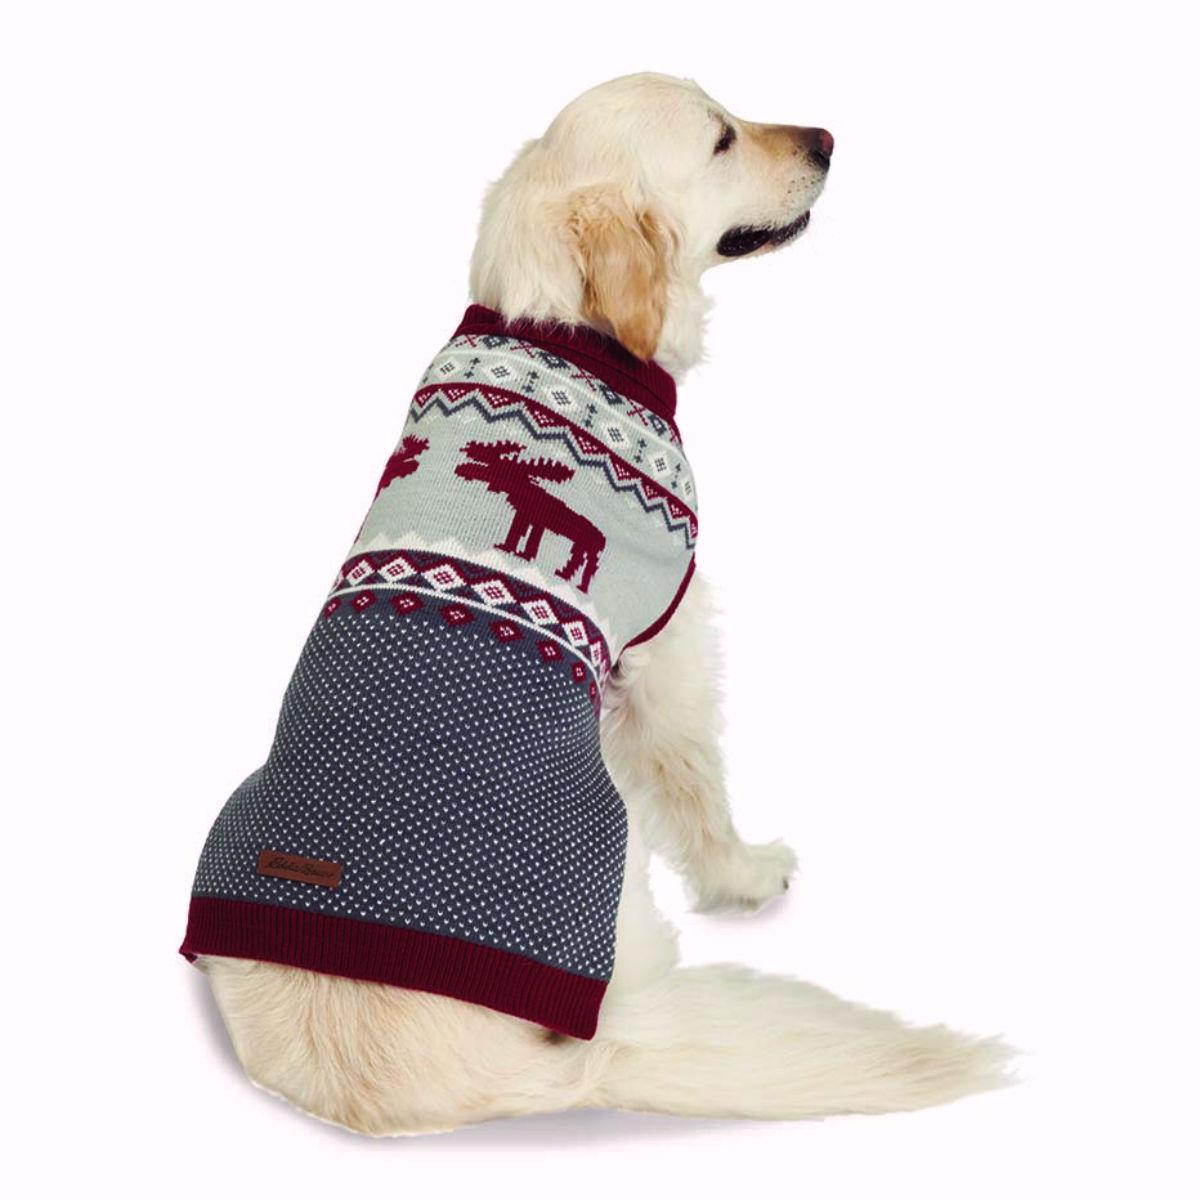 Eddie Bauer Moose Fair Isle Dog Sweater - Red and Gray